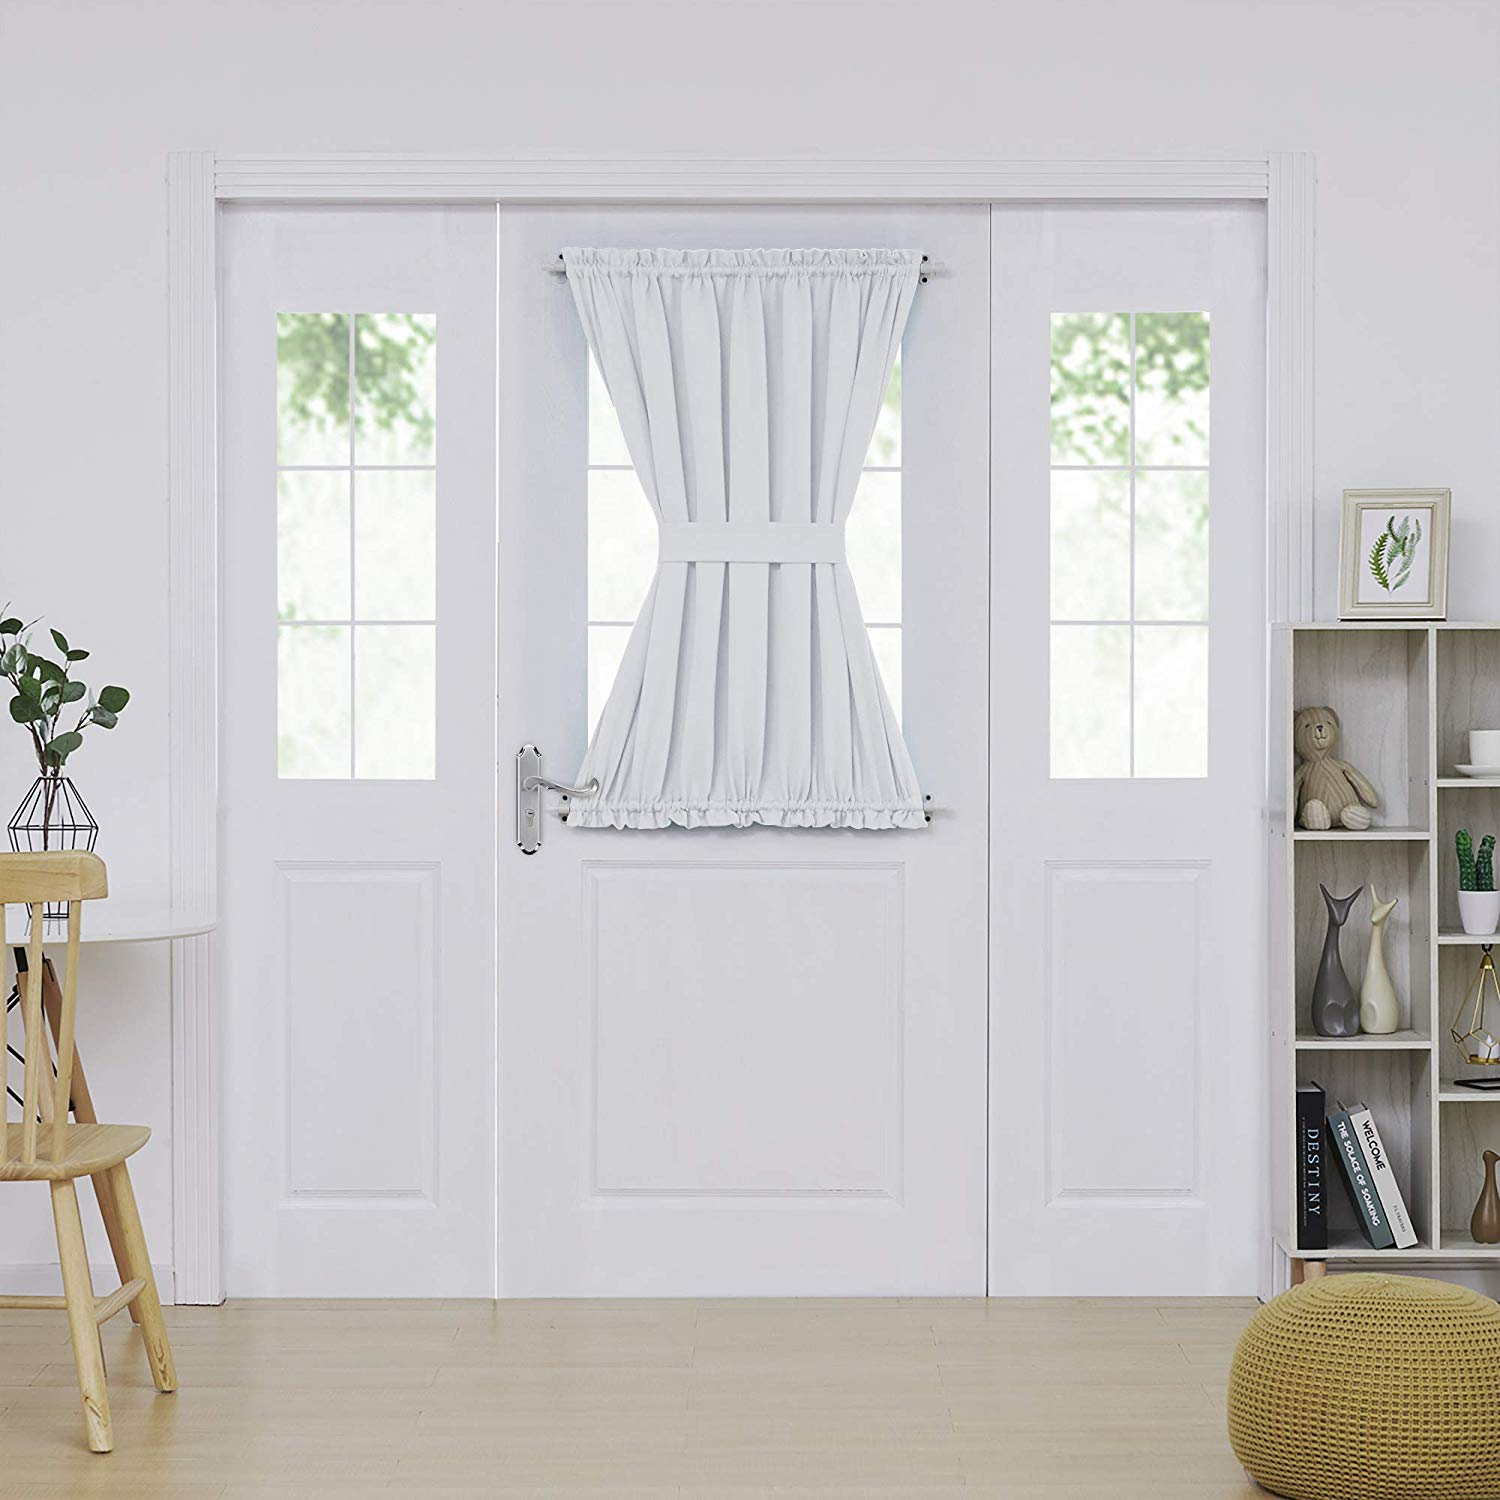 a white French door panel curtain with tieback for adding privacy in a half glass door design